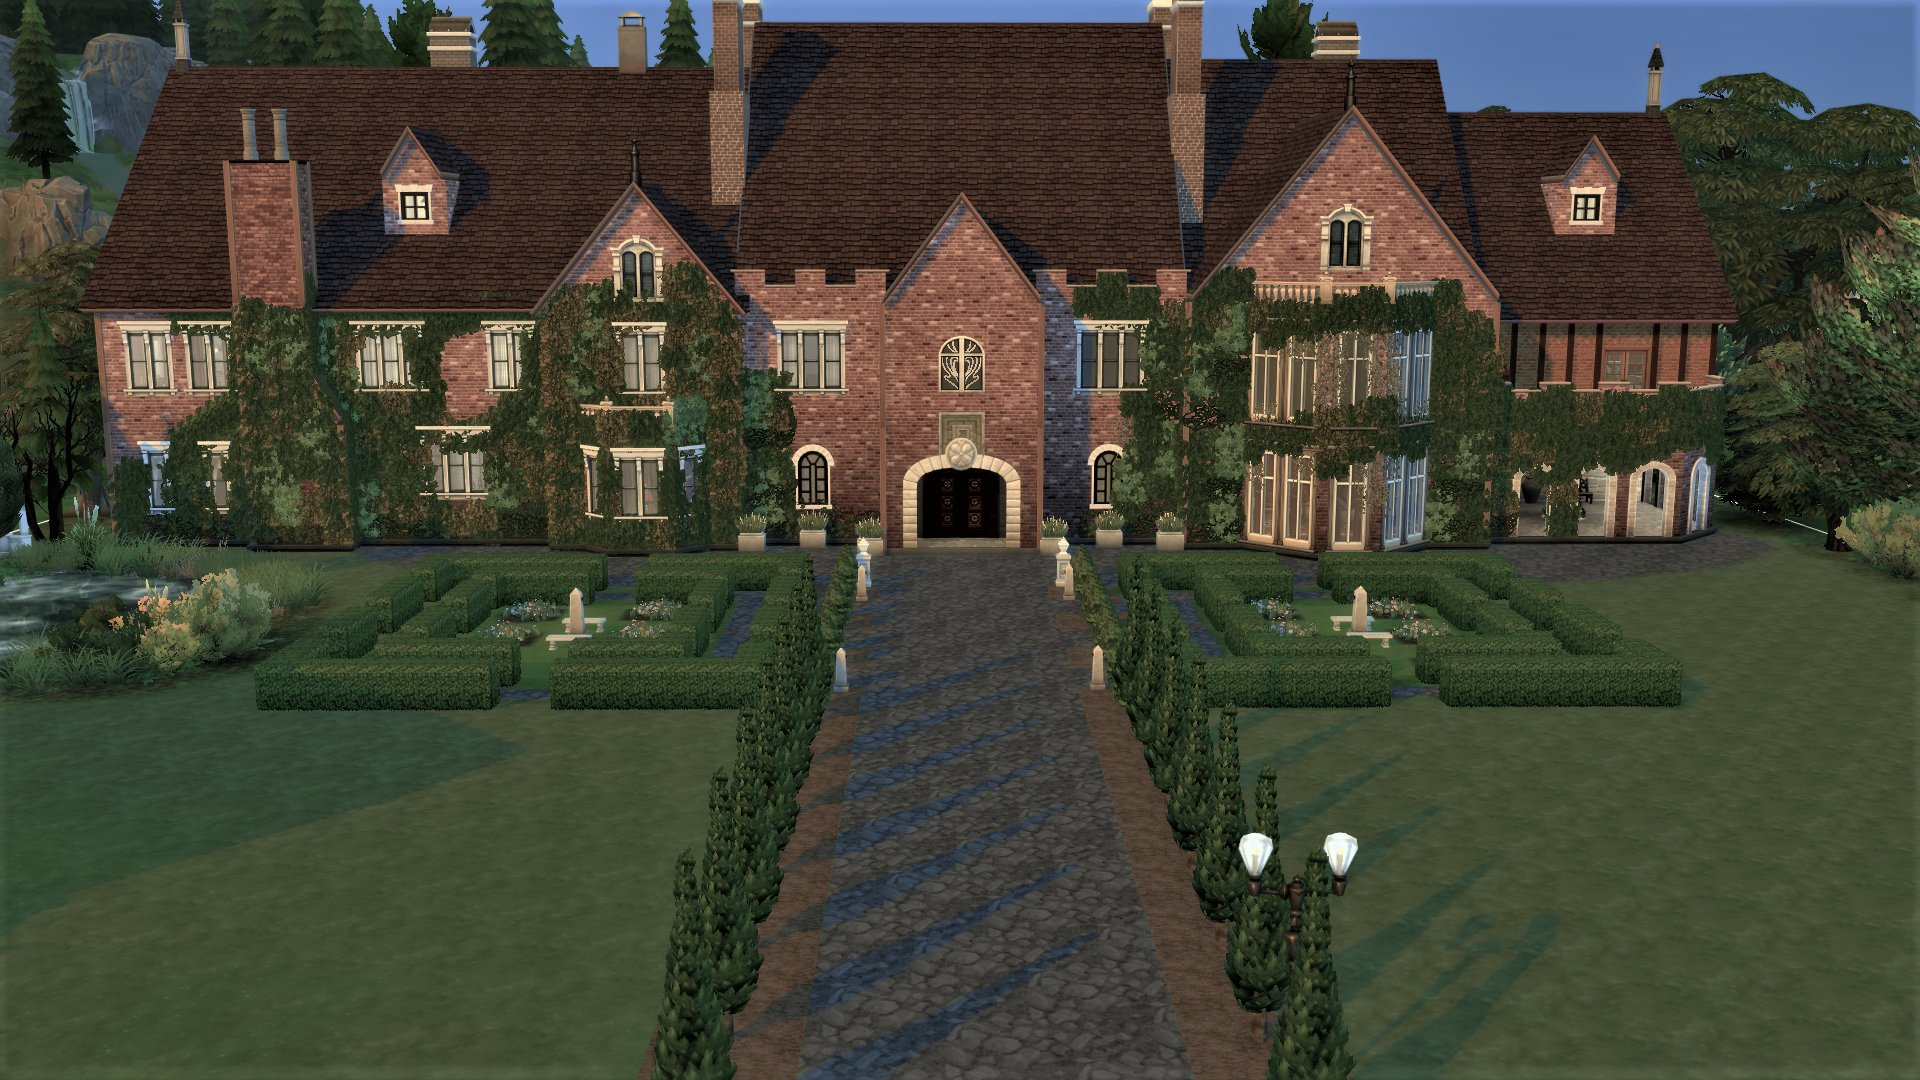 A screenshot of the imposing front of Bly Manor from The Haunting of Bly Manor Netflix show, built in The Sims 4